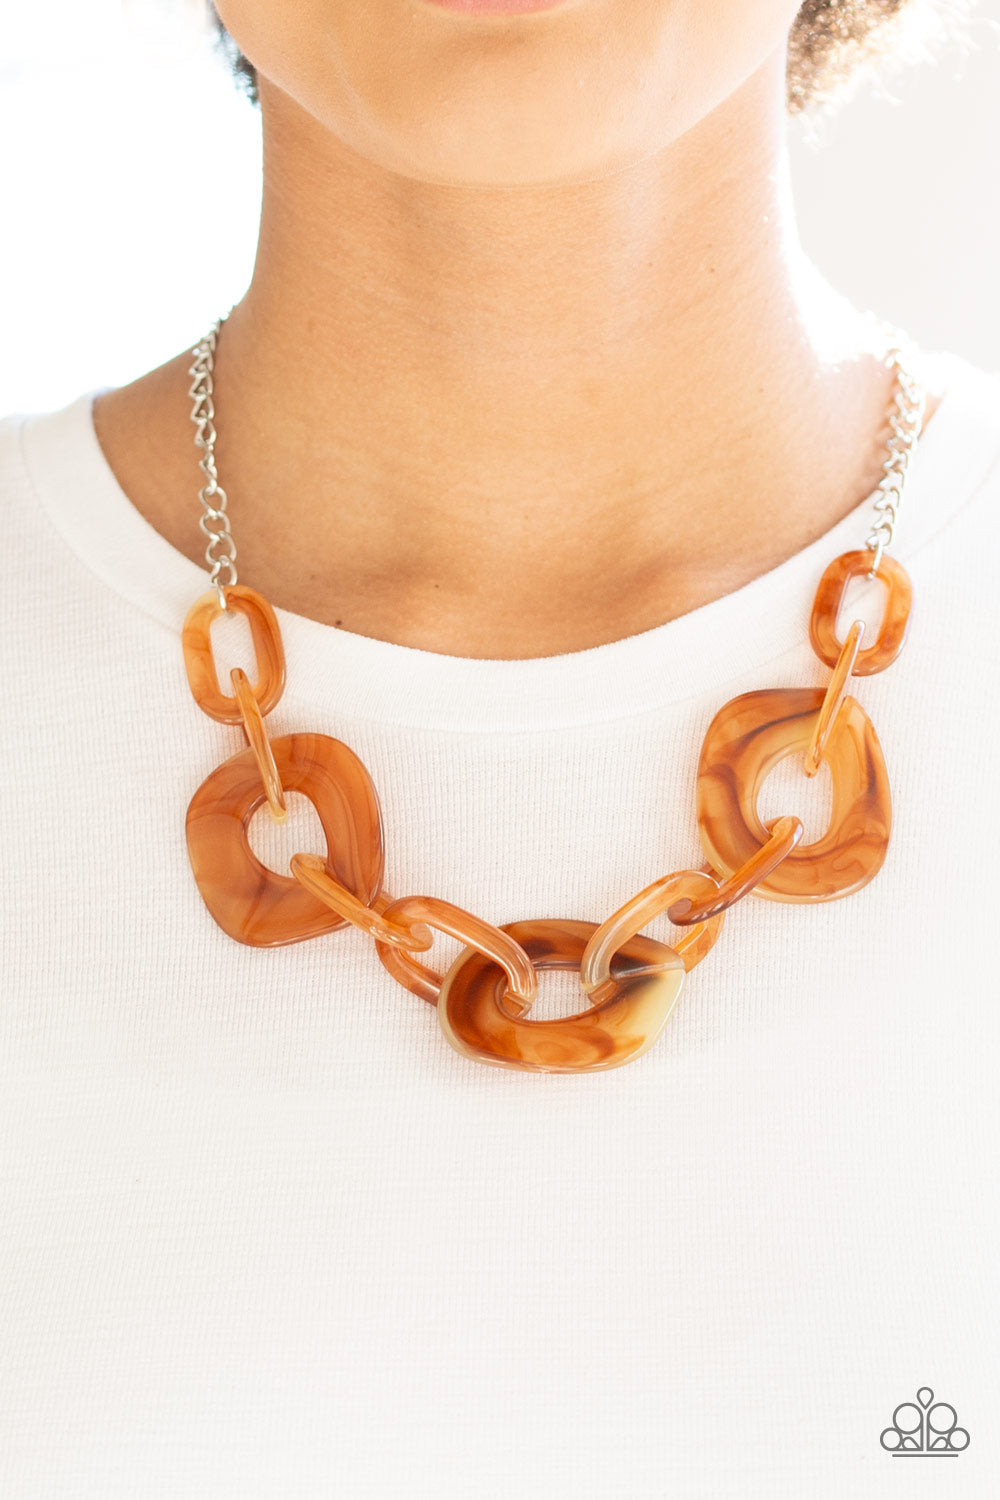 Courageously Chromatic Brown Paparazzi Necklace - JewelTonez Jewelry